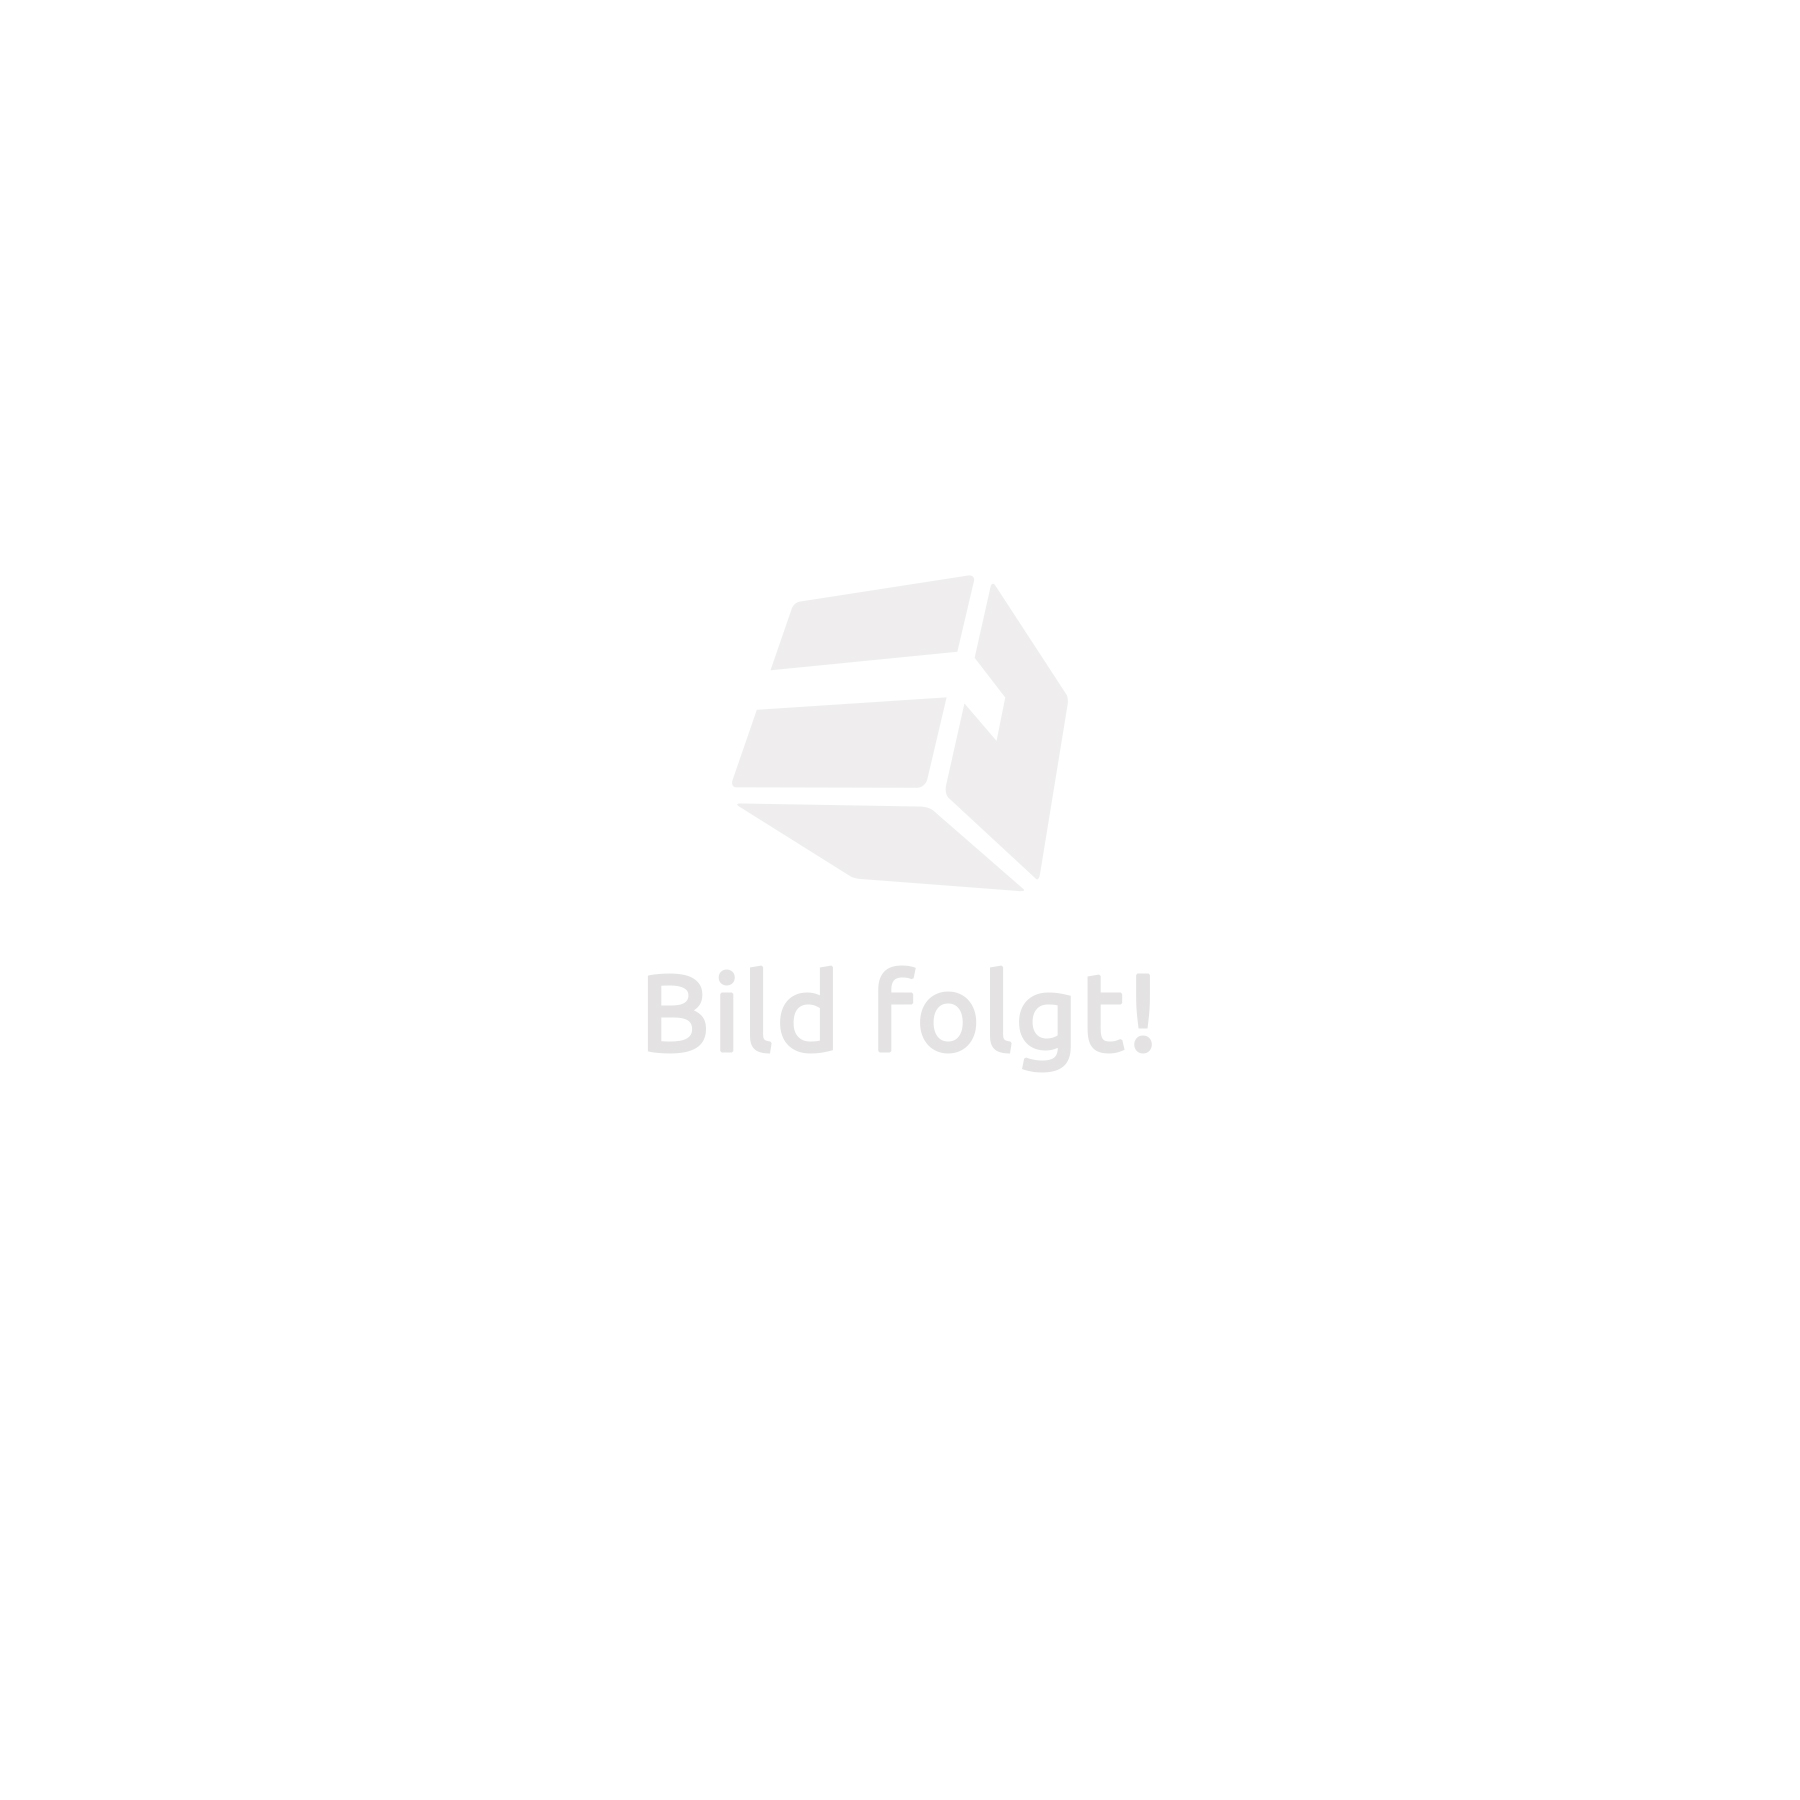 chaise de camping pliante avec housse fauteuil de camping pliable siege de plage ebay. Black Bedroom Furniture Sets. Home Design Ideas